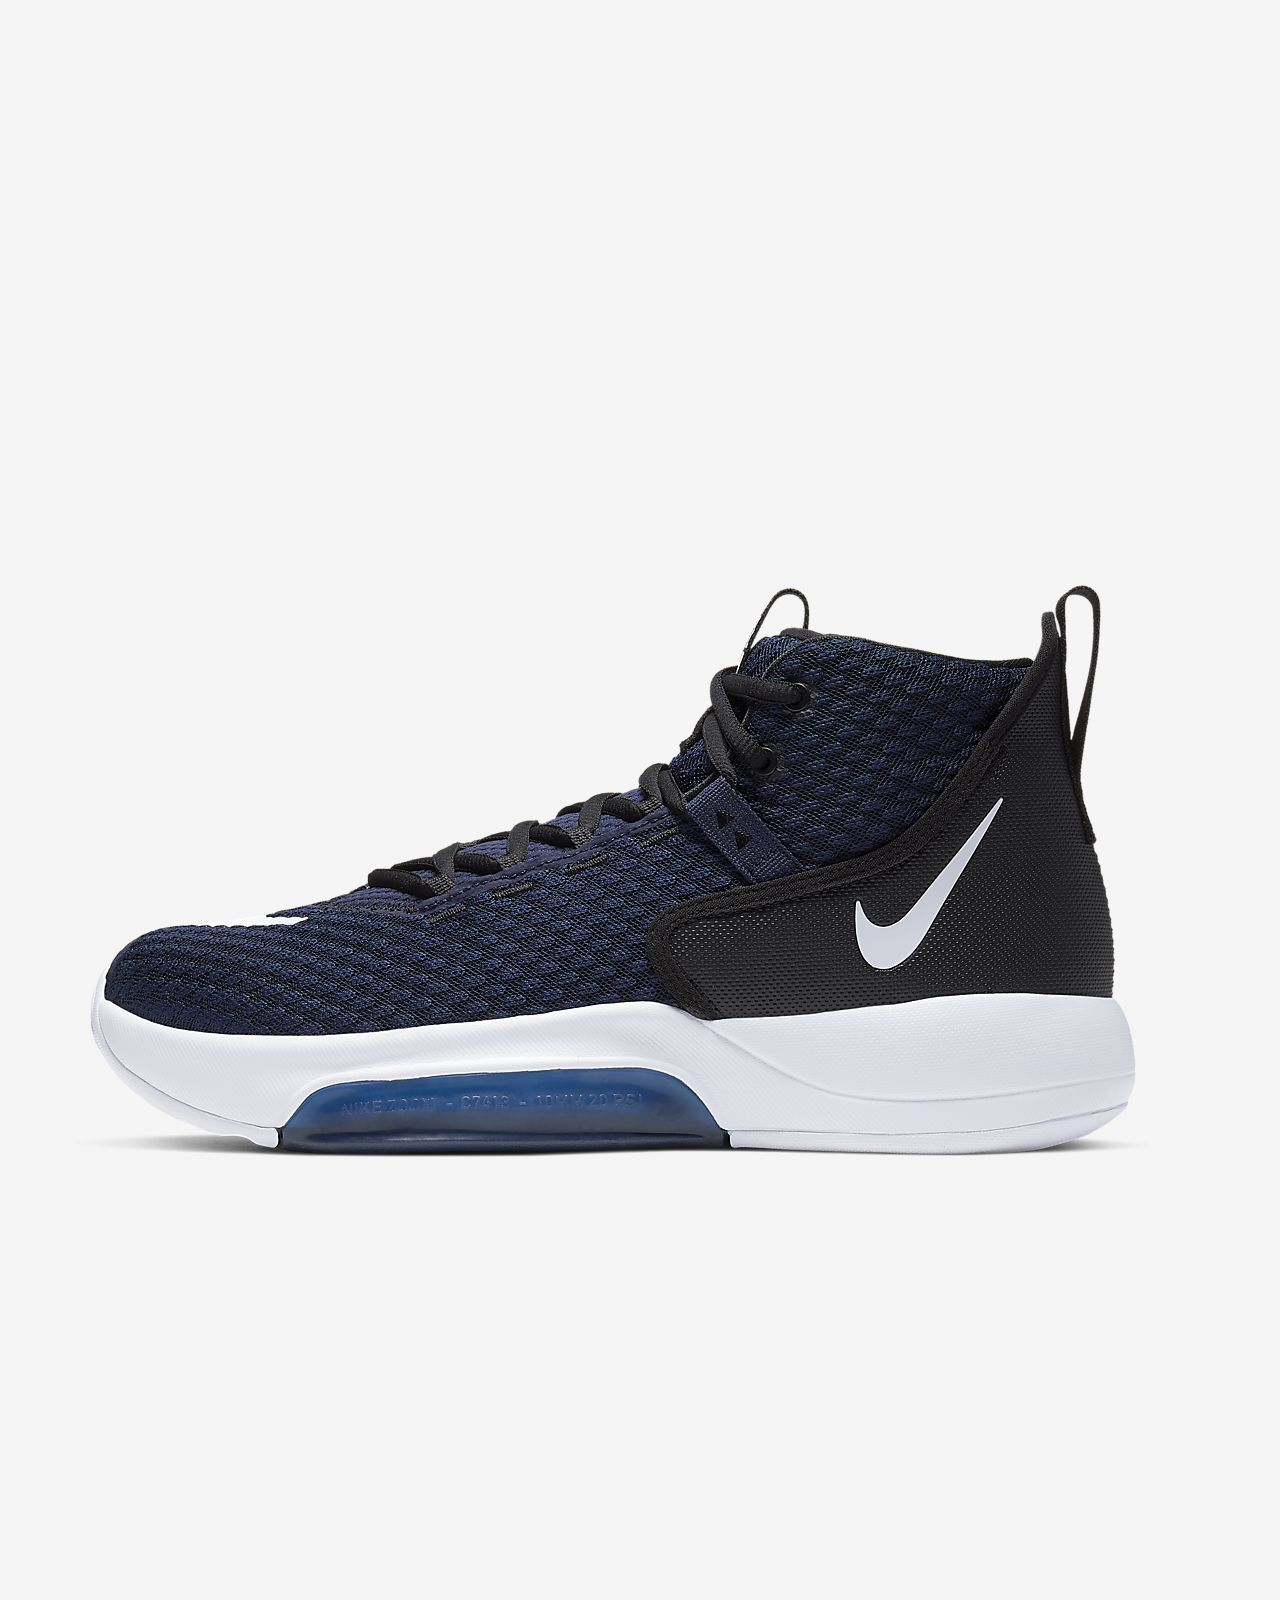 Nike Zoom Rize Team Basketball Shoe Nike Com In 2020 Nike Nike Zoom Shoes